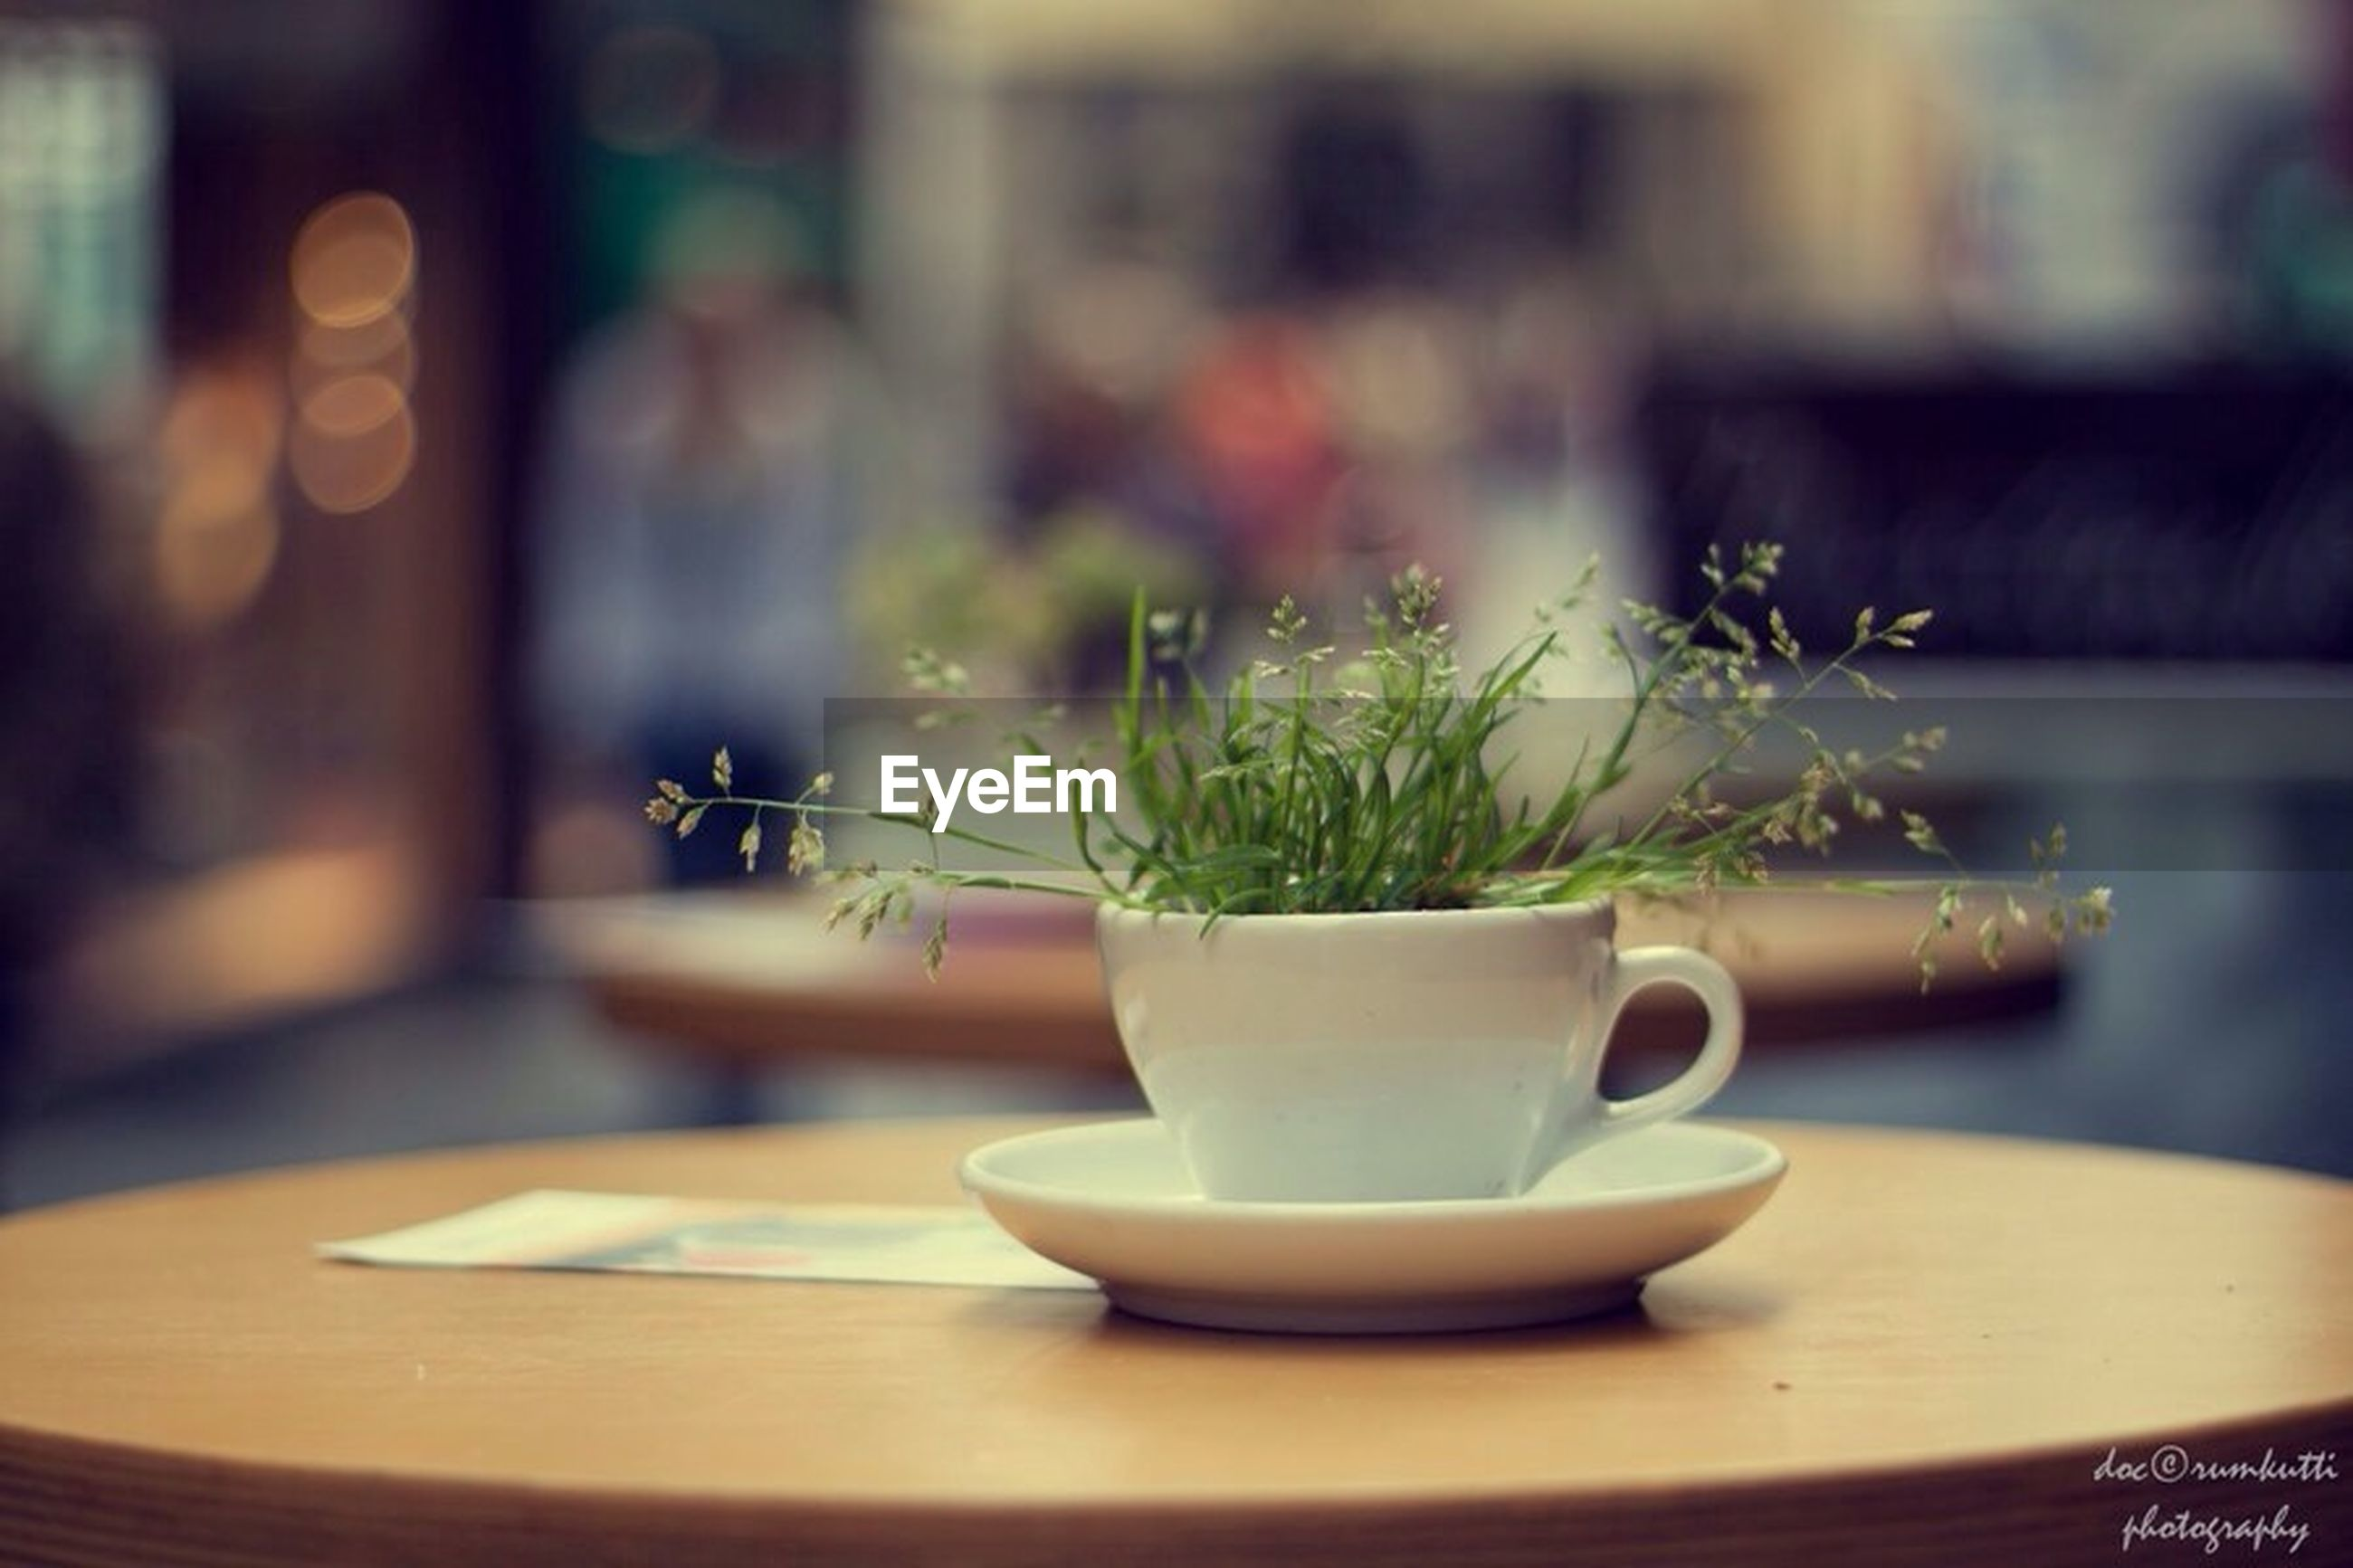 indoors, potted plant, focus on foreground, plant, flower, selective focus, window, home interior, close-up, growth, table, house, vase, built structure, no people, architecture, day, chair, hanging, nature